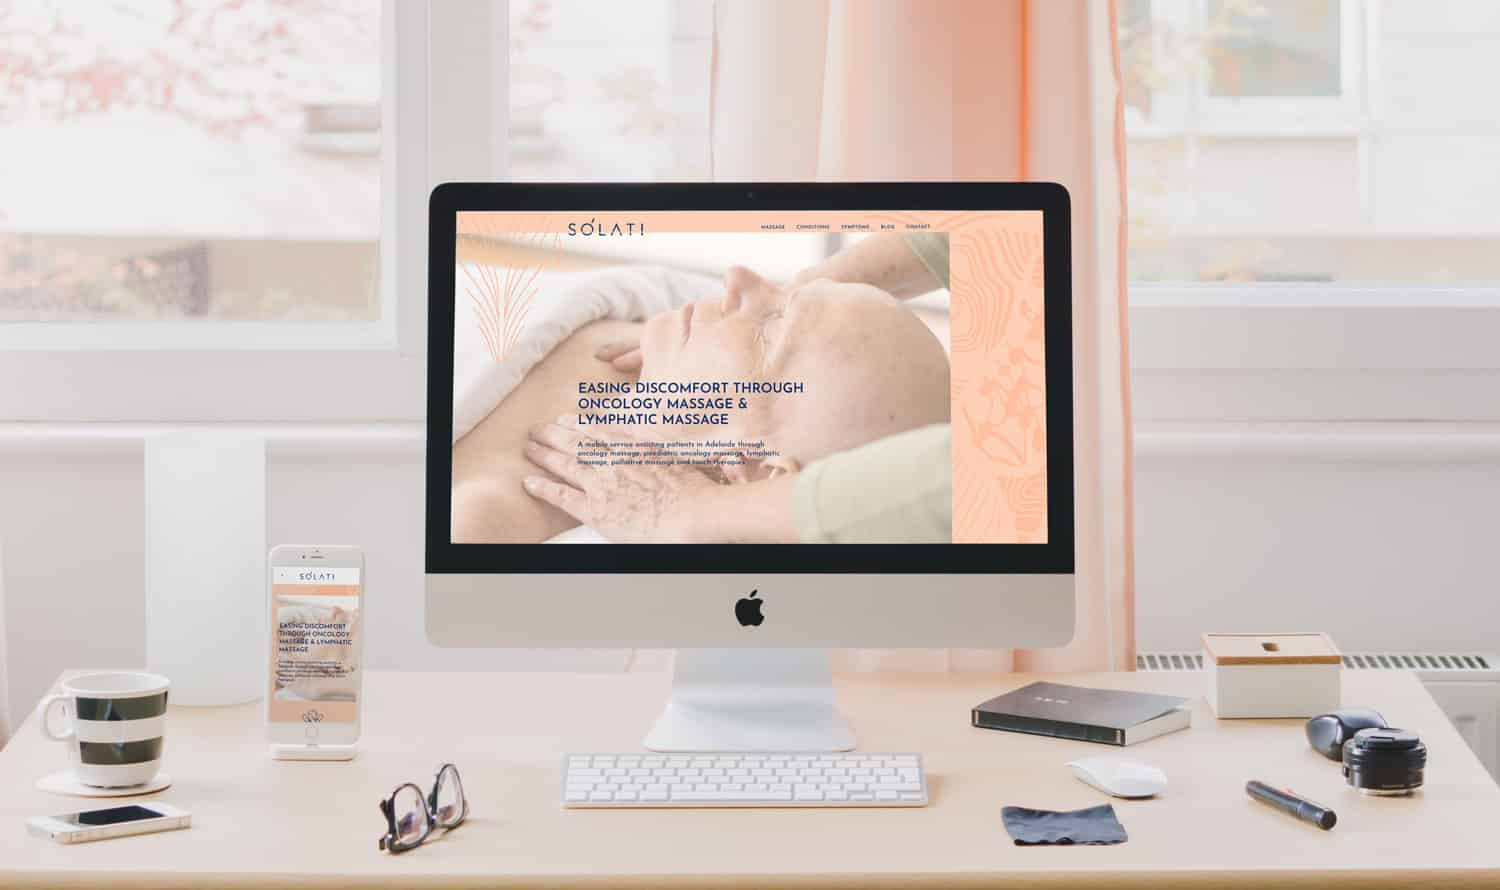 Wordpress website design for Solati massage services by Flux Visual Communication, Adelaide